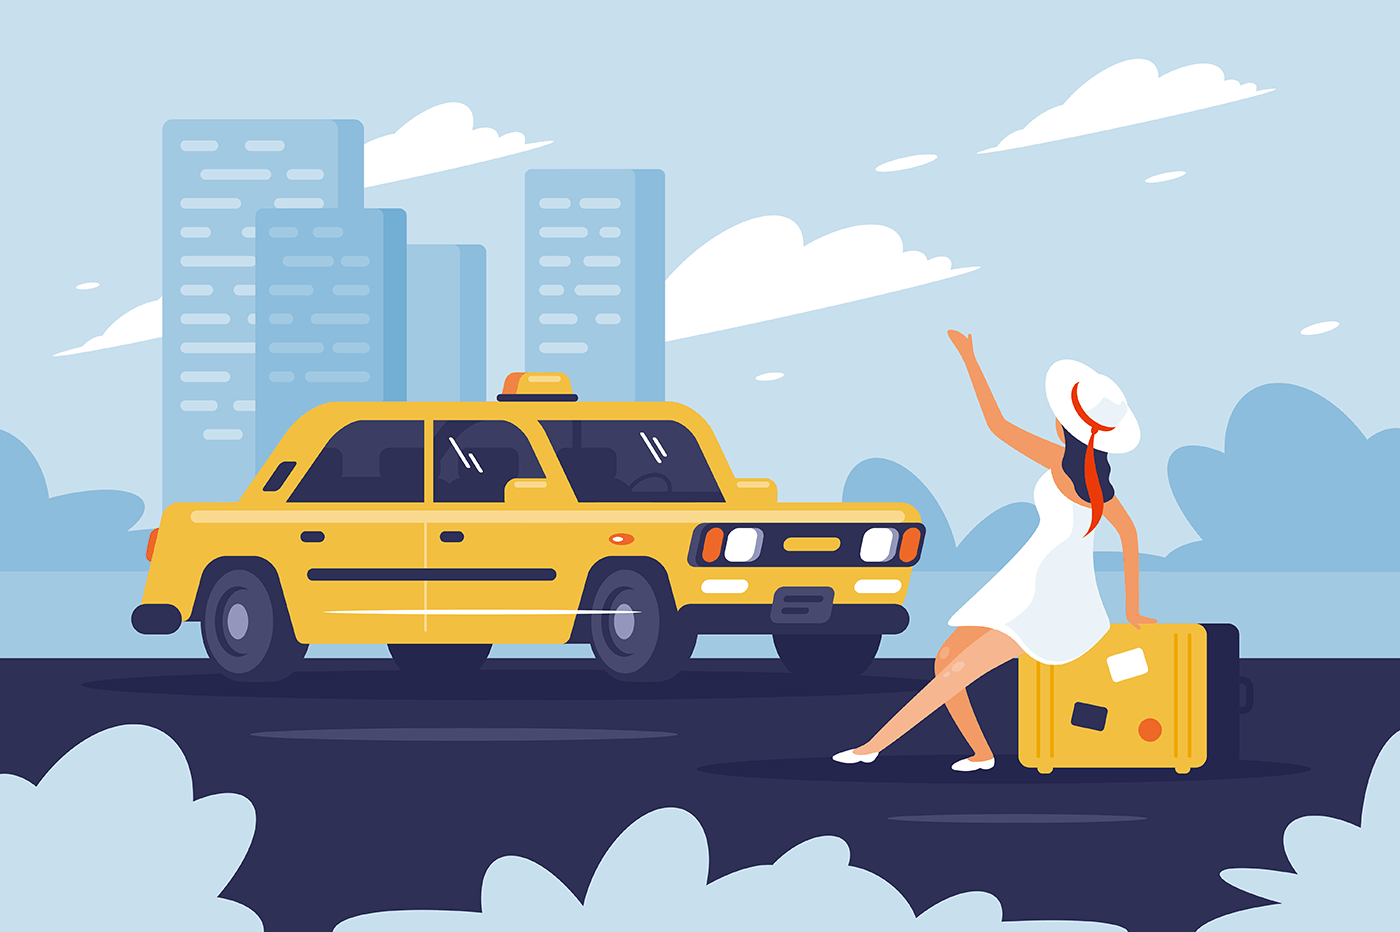 Person catching taxi on the road next to the city.